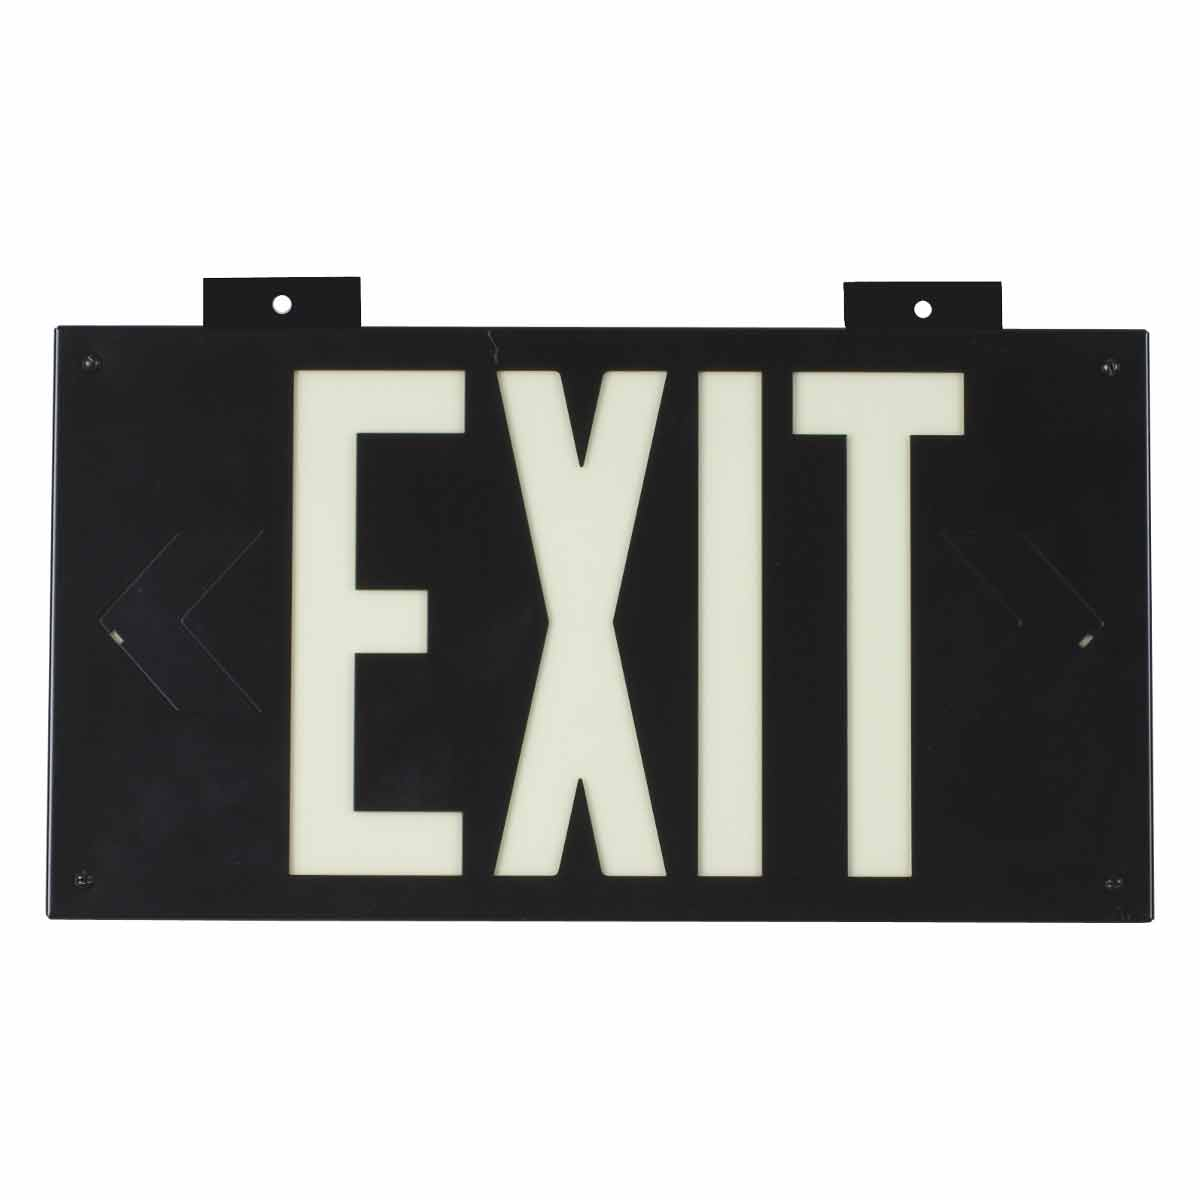 Brady® 38097B Rectangle Exit Sign, No Header, 8-1/4 in H x 15-1/4 in W, White on Black, B-355 Glow-In-The-Dark Plastic, Bracket Mounting